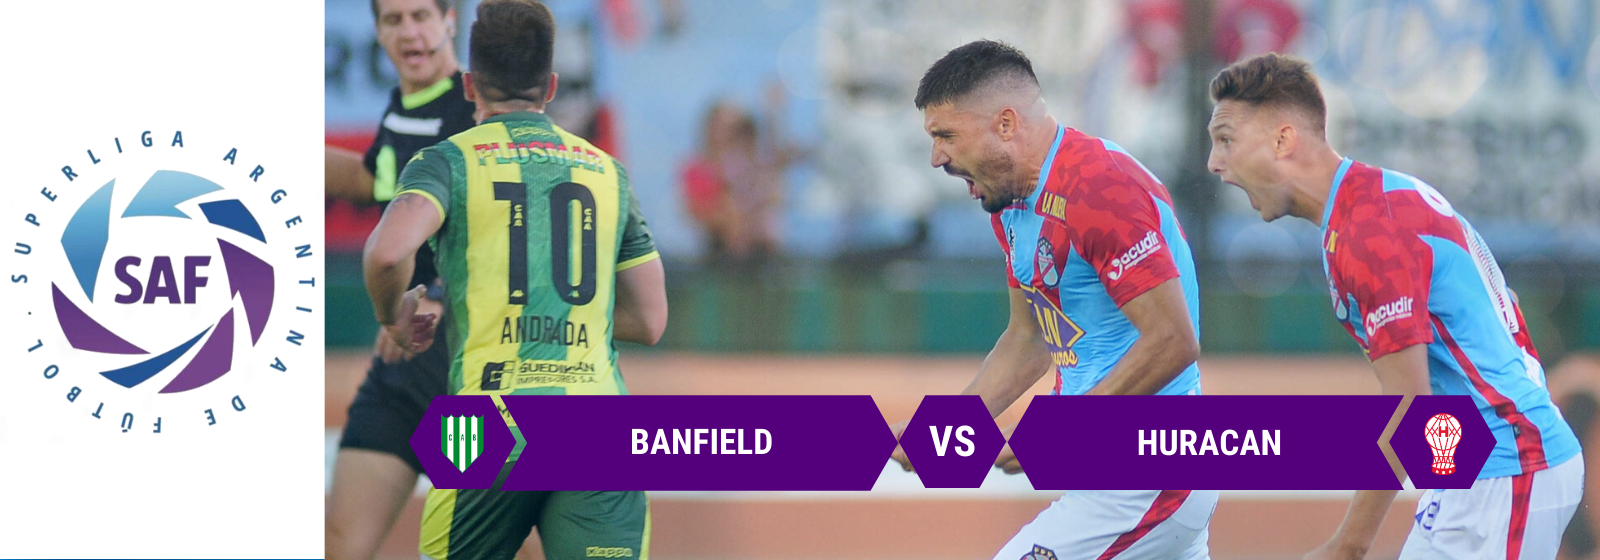 Asianconnect: Banfield vs Huracan Odds for March 07, 2020